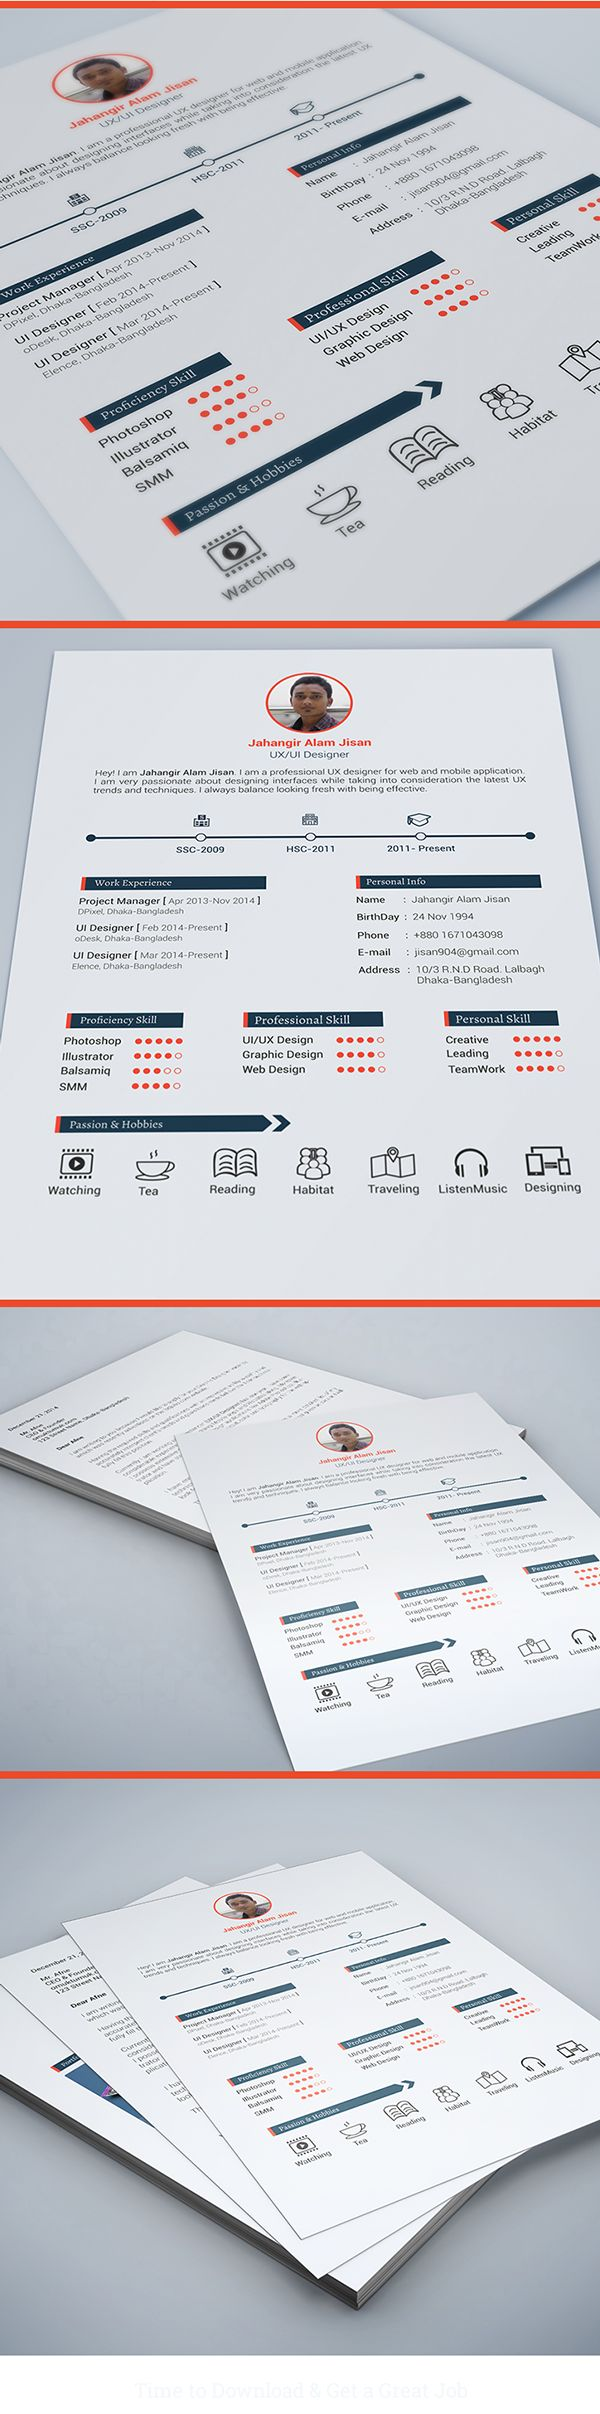 distribute your resume